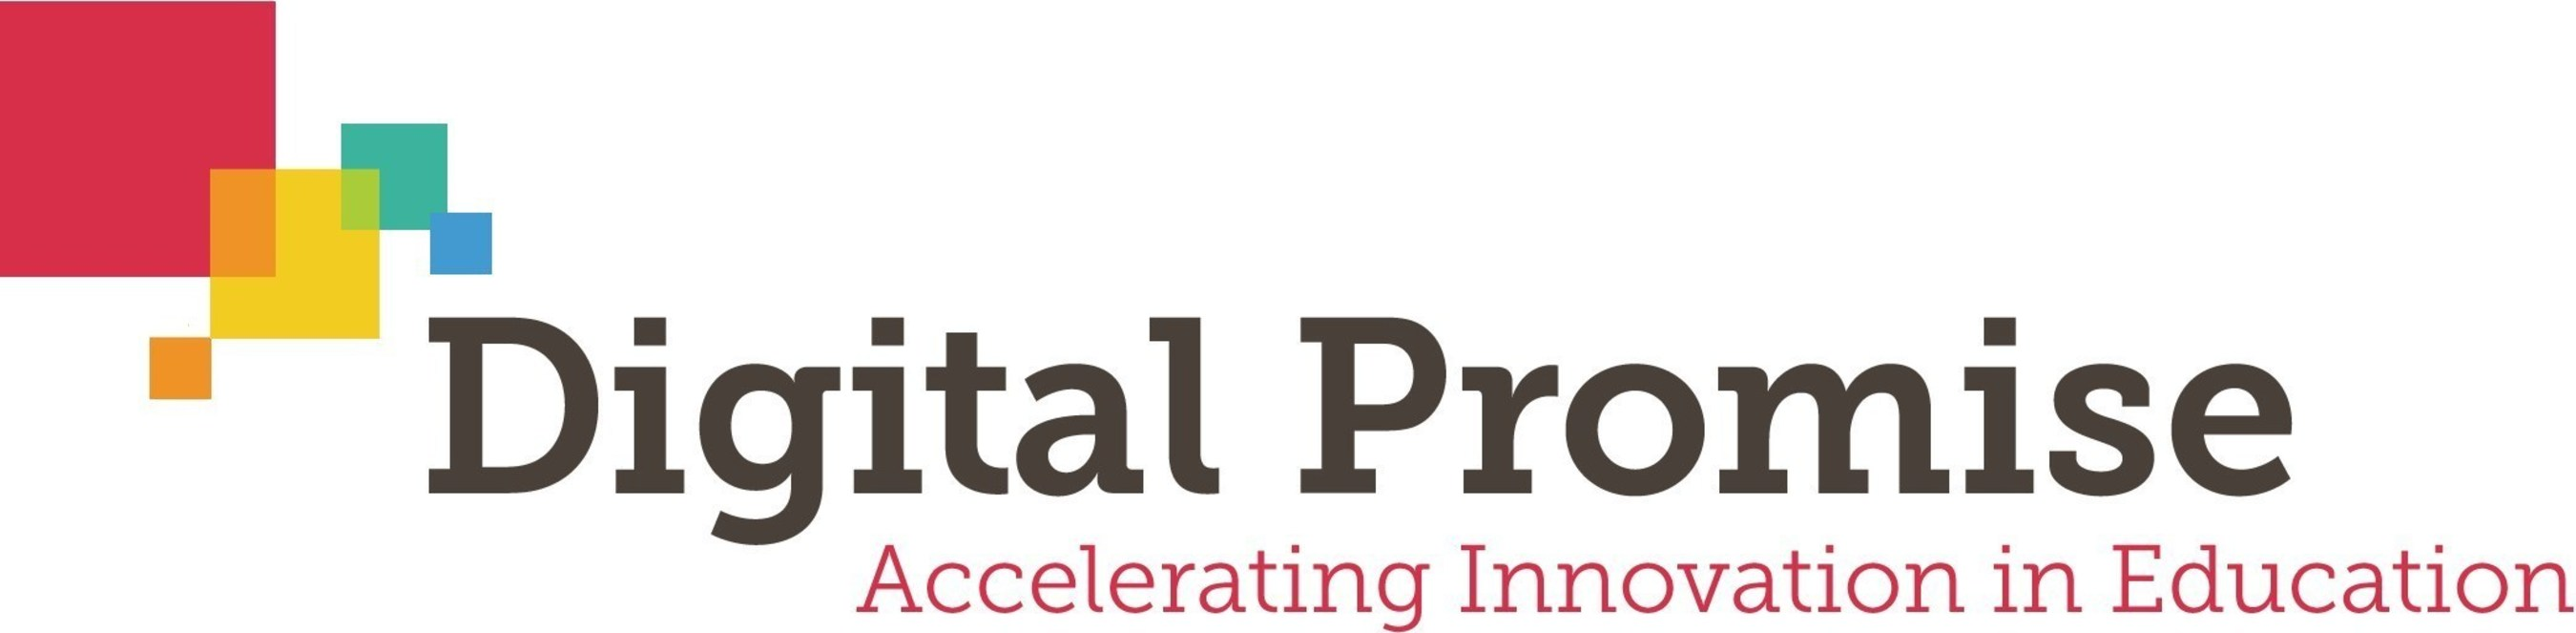 Digital Promise is a non-profit dedicated to accelerating innovation in education.